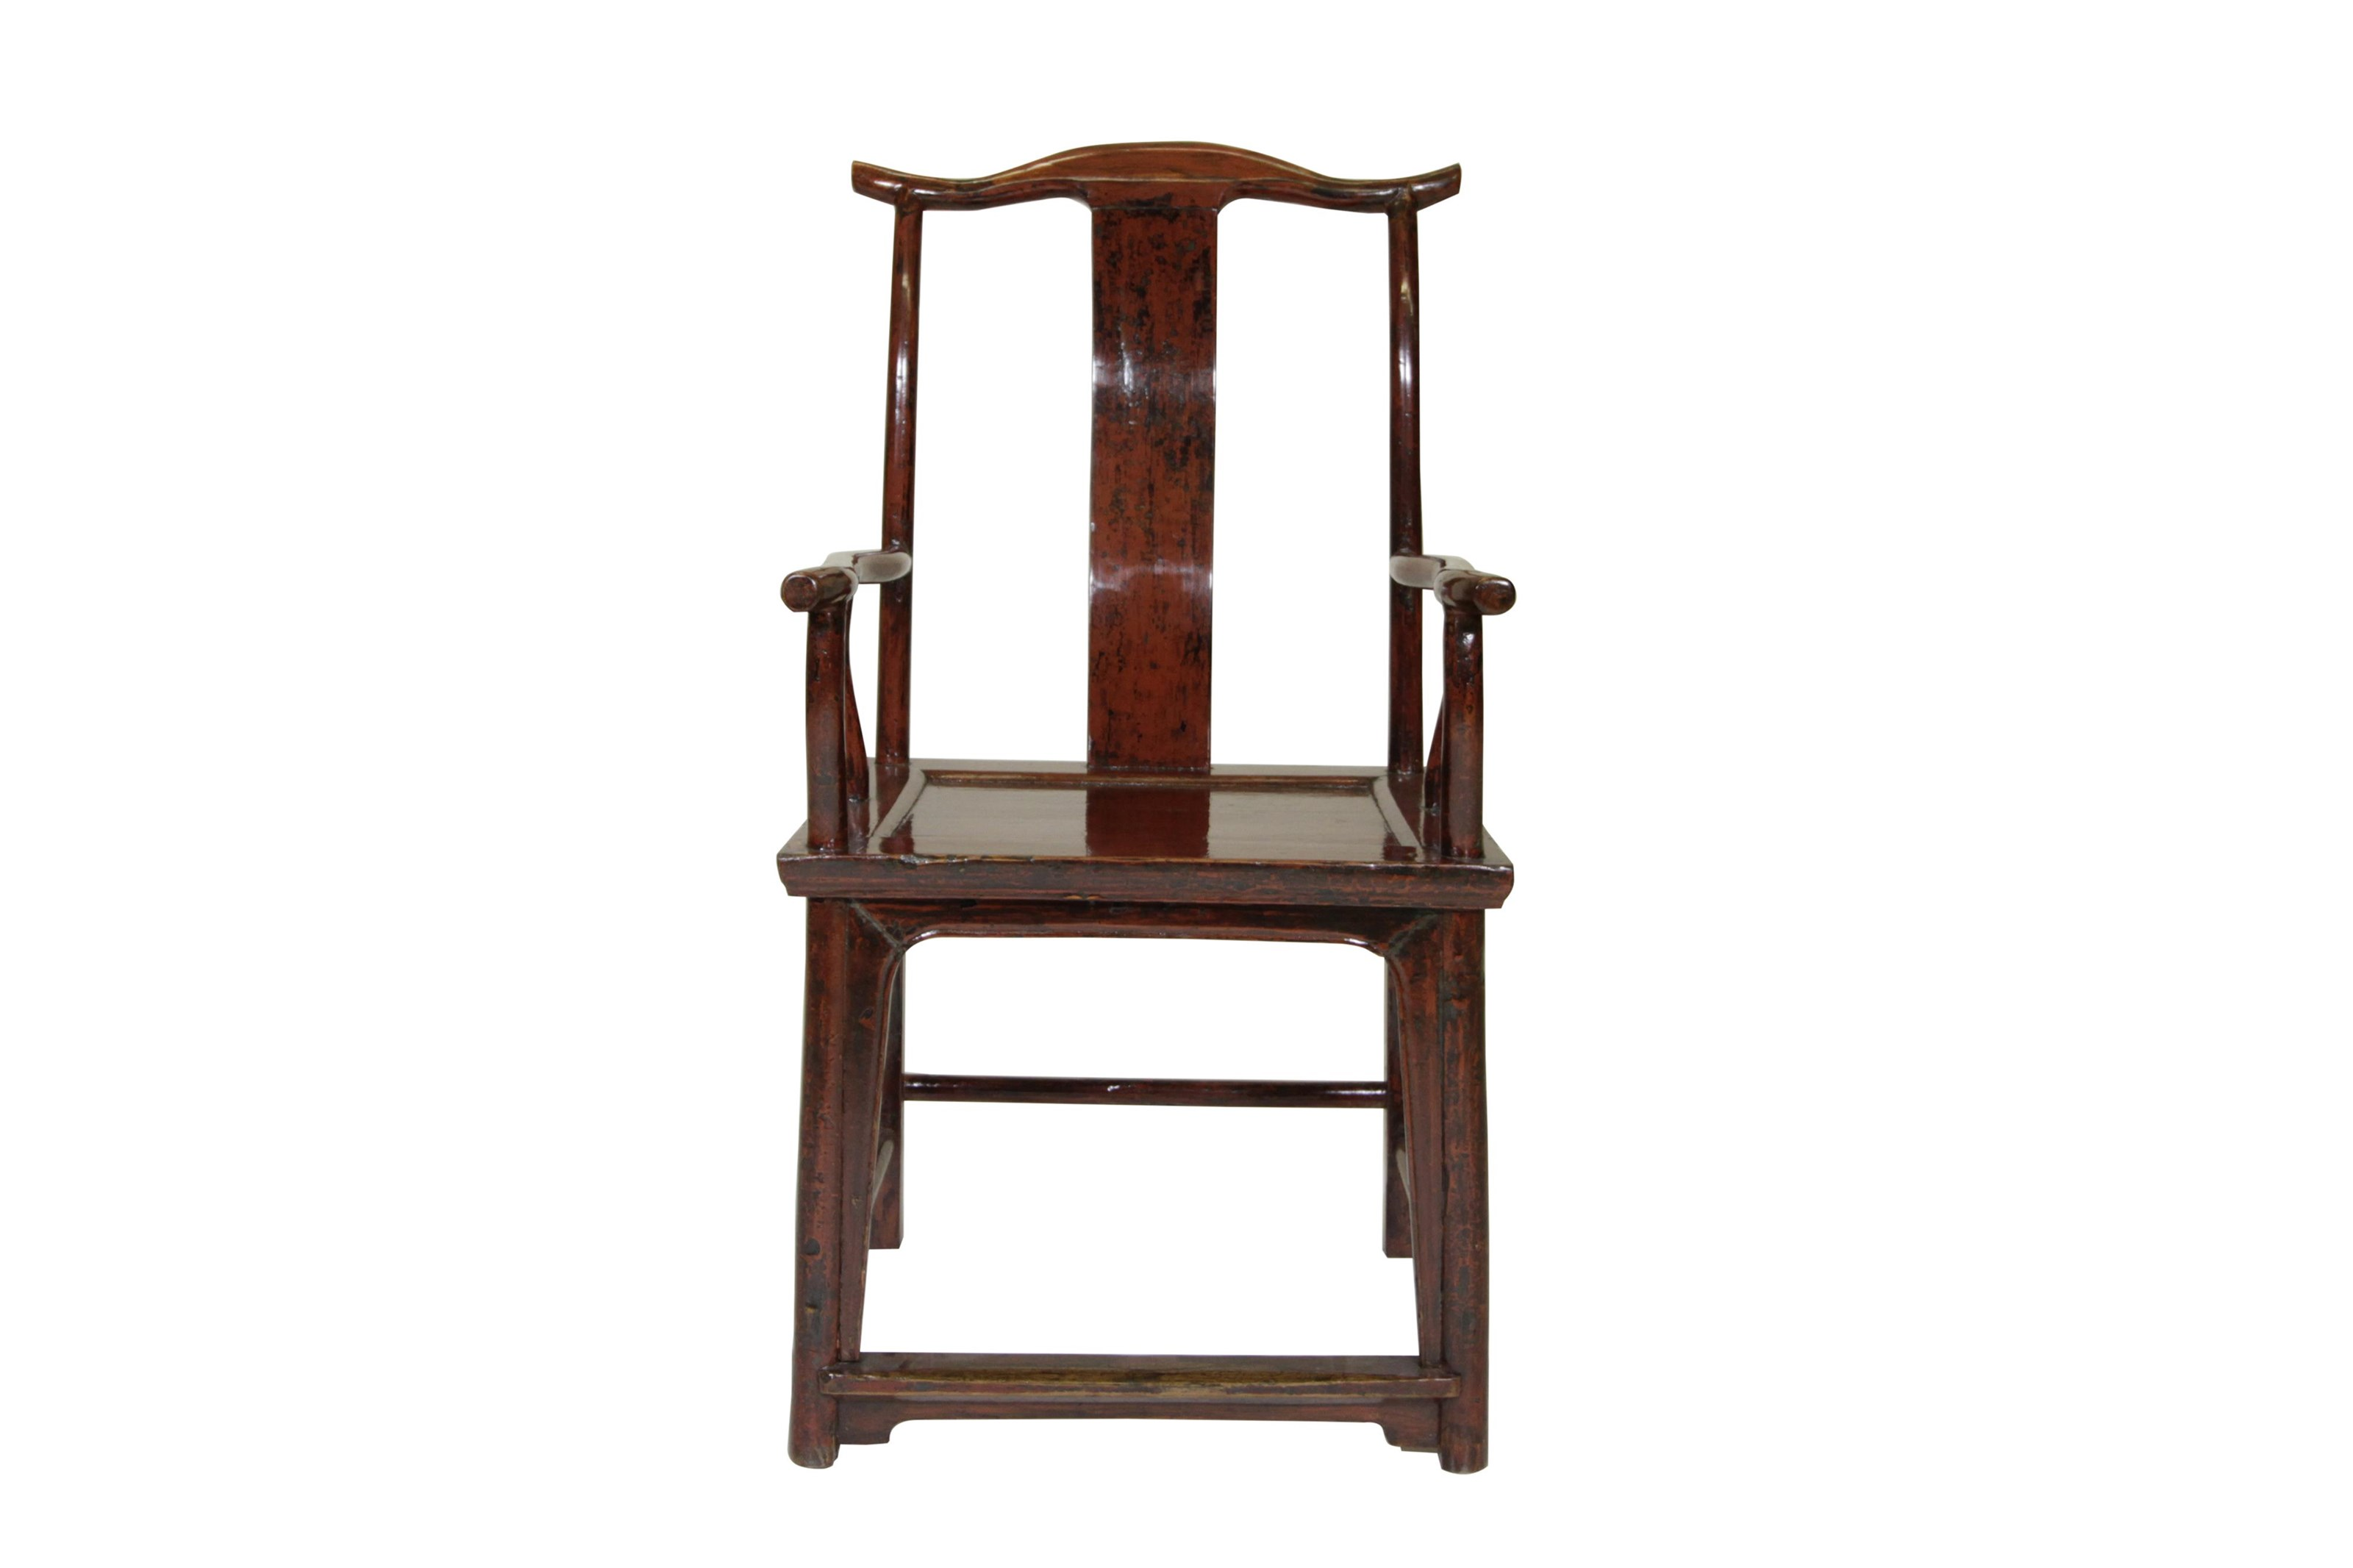 Yoke Back Chair by C.S. Wo & Sons Antiques at C. S. Wo & Sons Hawaii